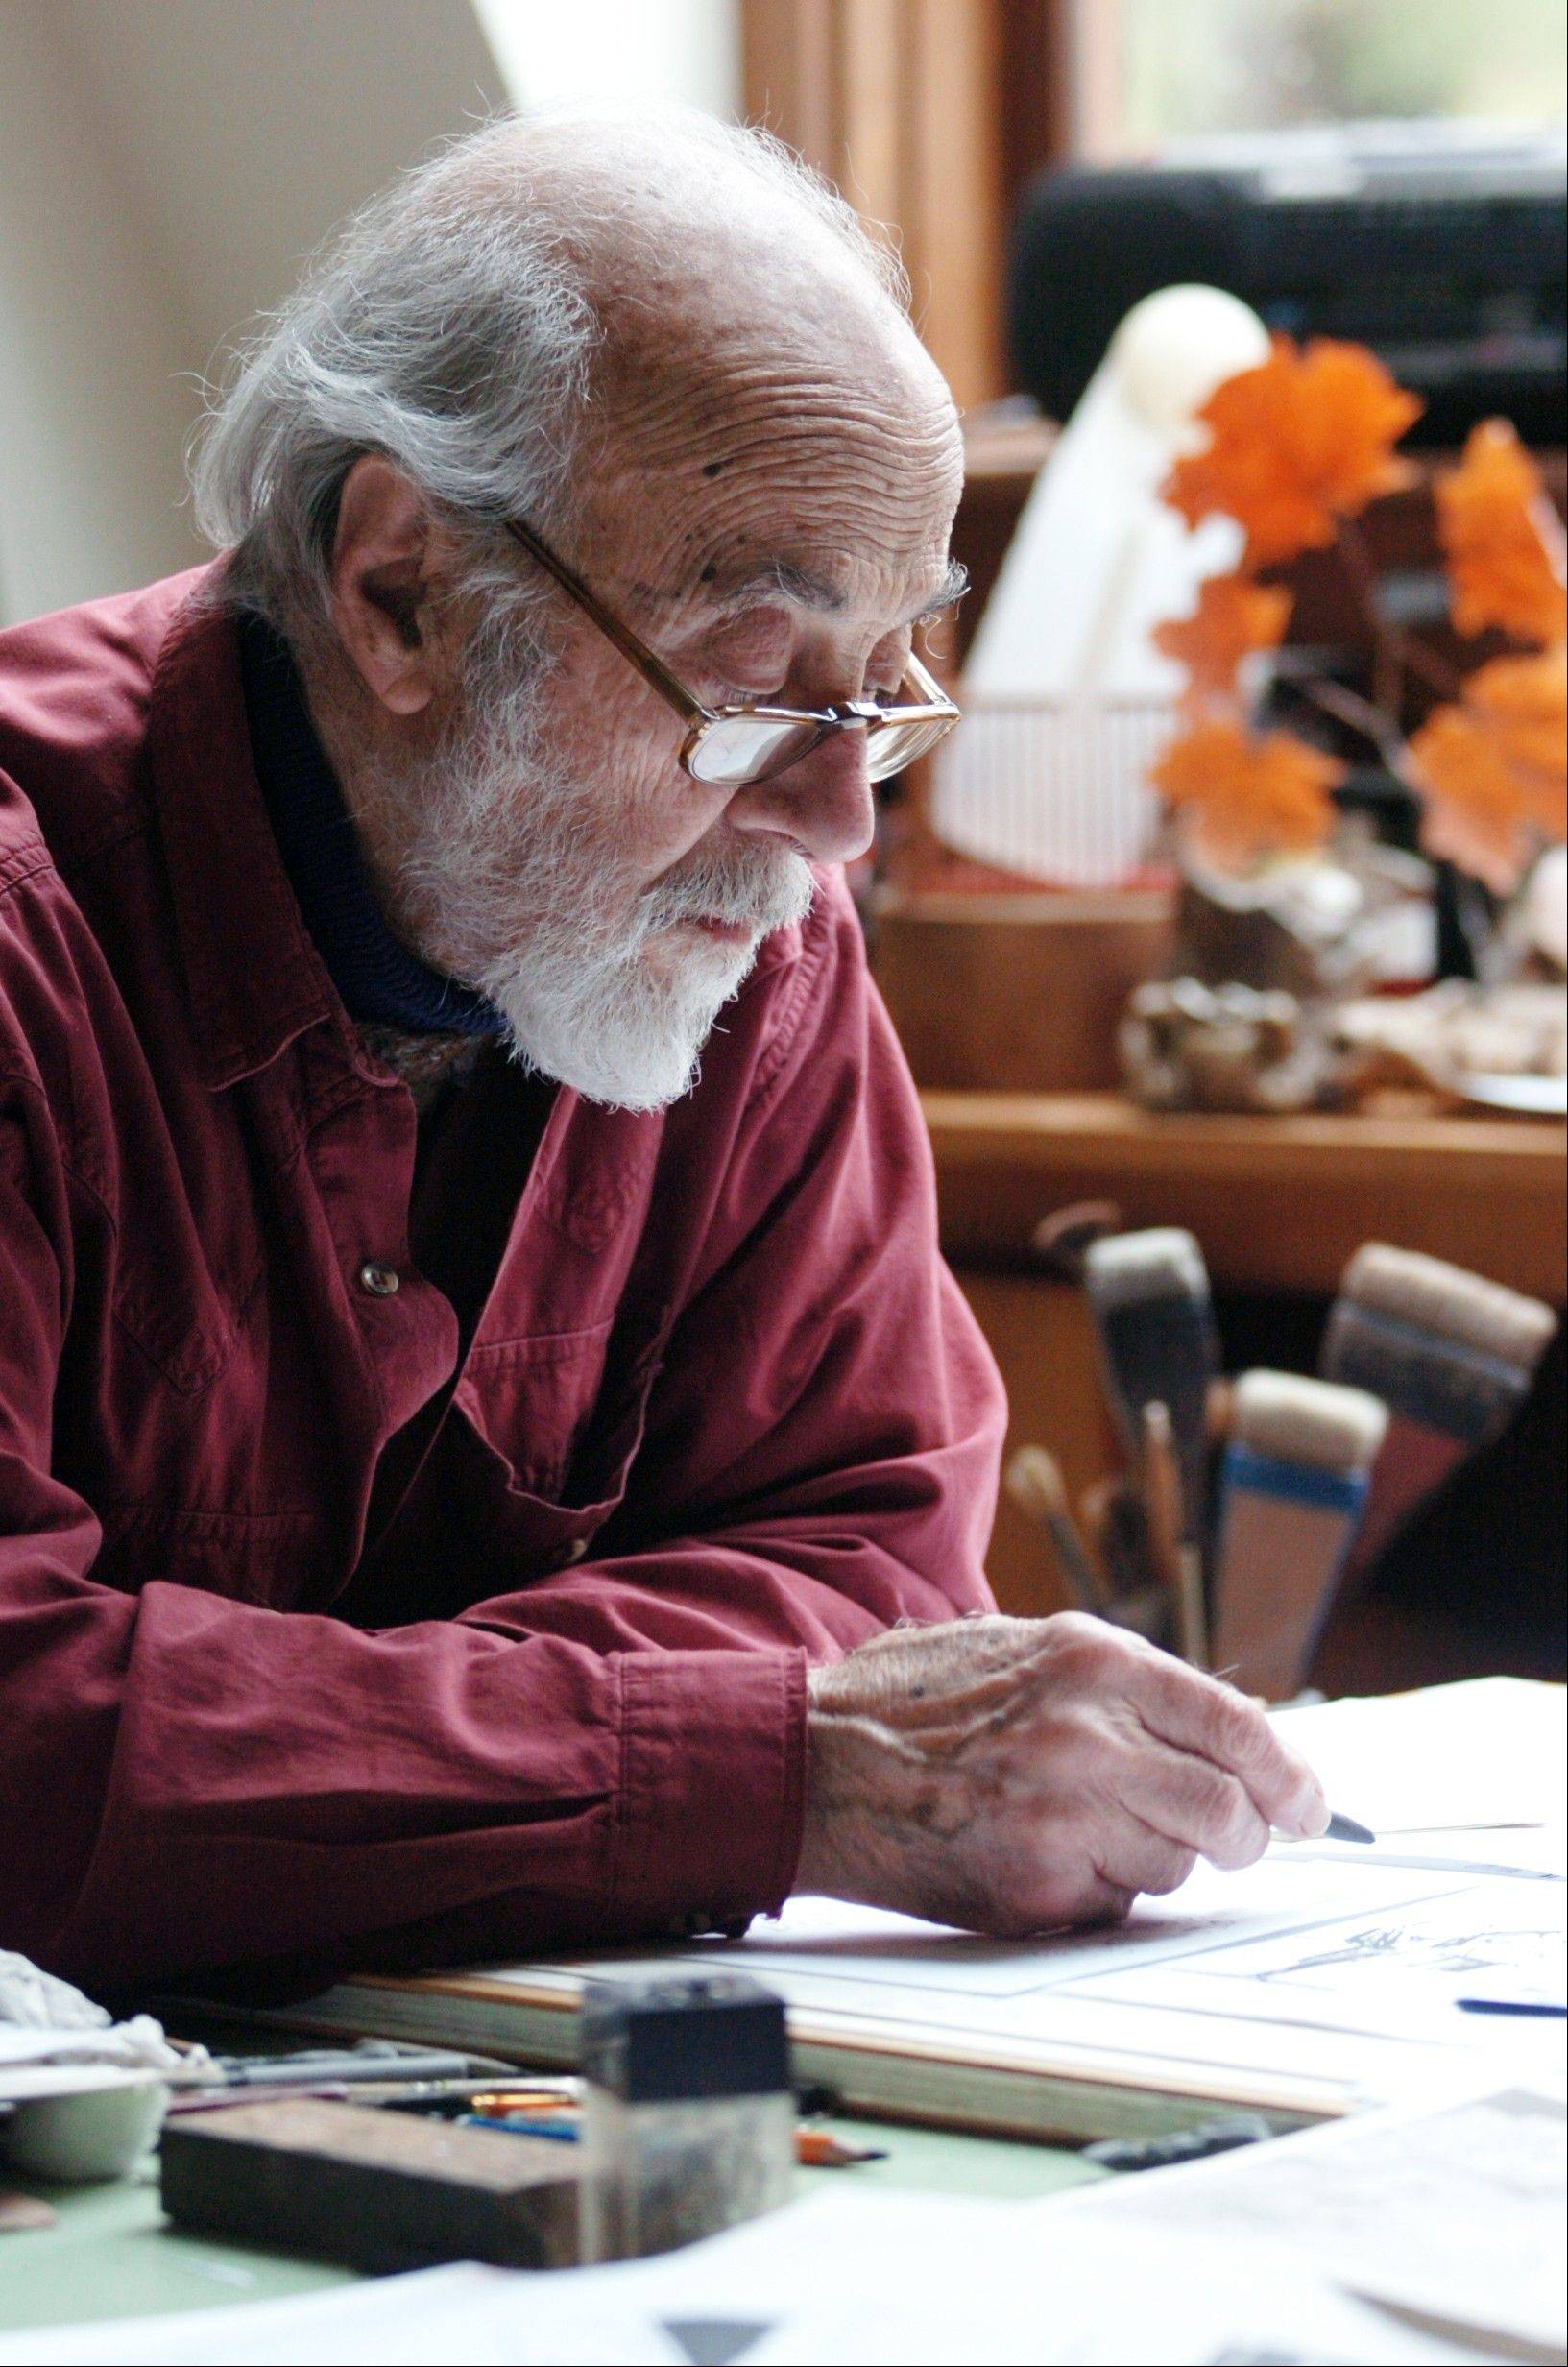 In this February 2010 photo, Marc Simont works at his desk at home in West Cornwall, Conn. Simont, an illustrator whose work adorned some of the most celebrated titles in children's literature, has died at his home in Cornwall, Saturday July 13, 2013. He was 97.